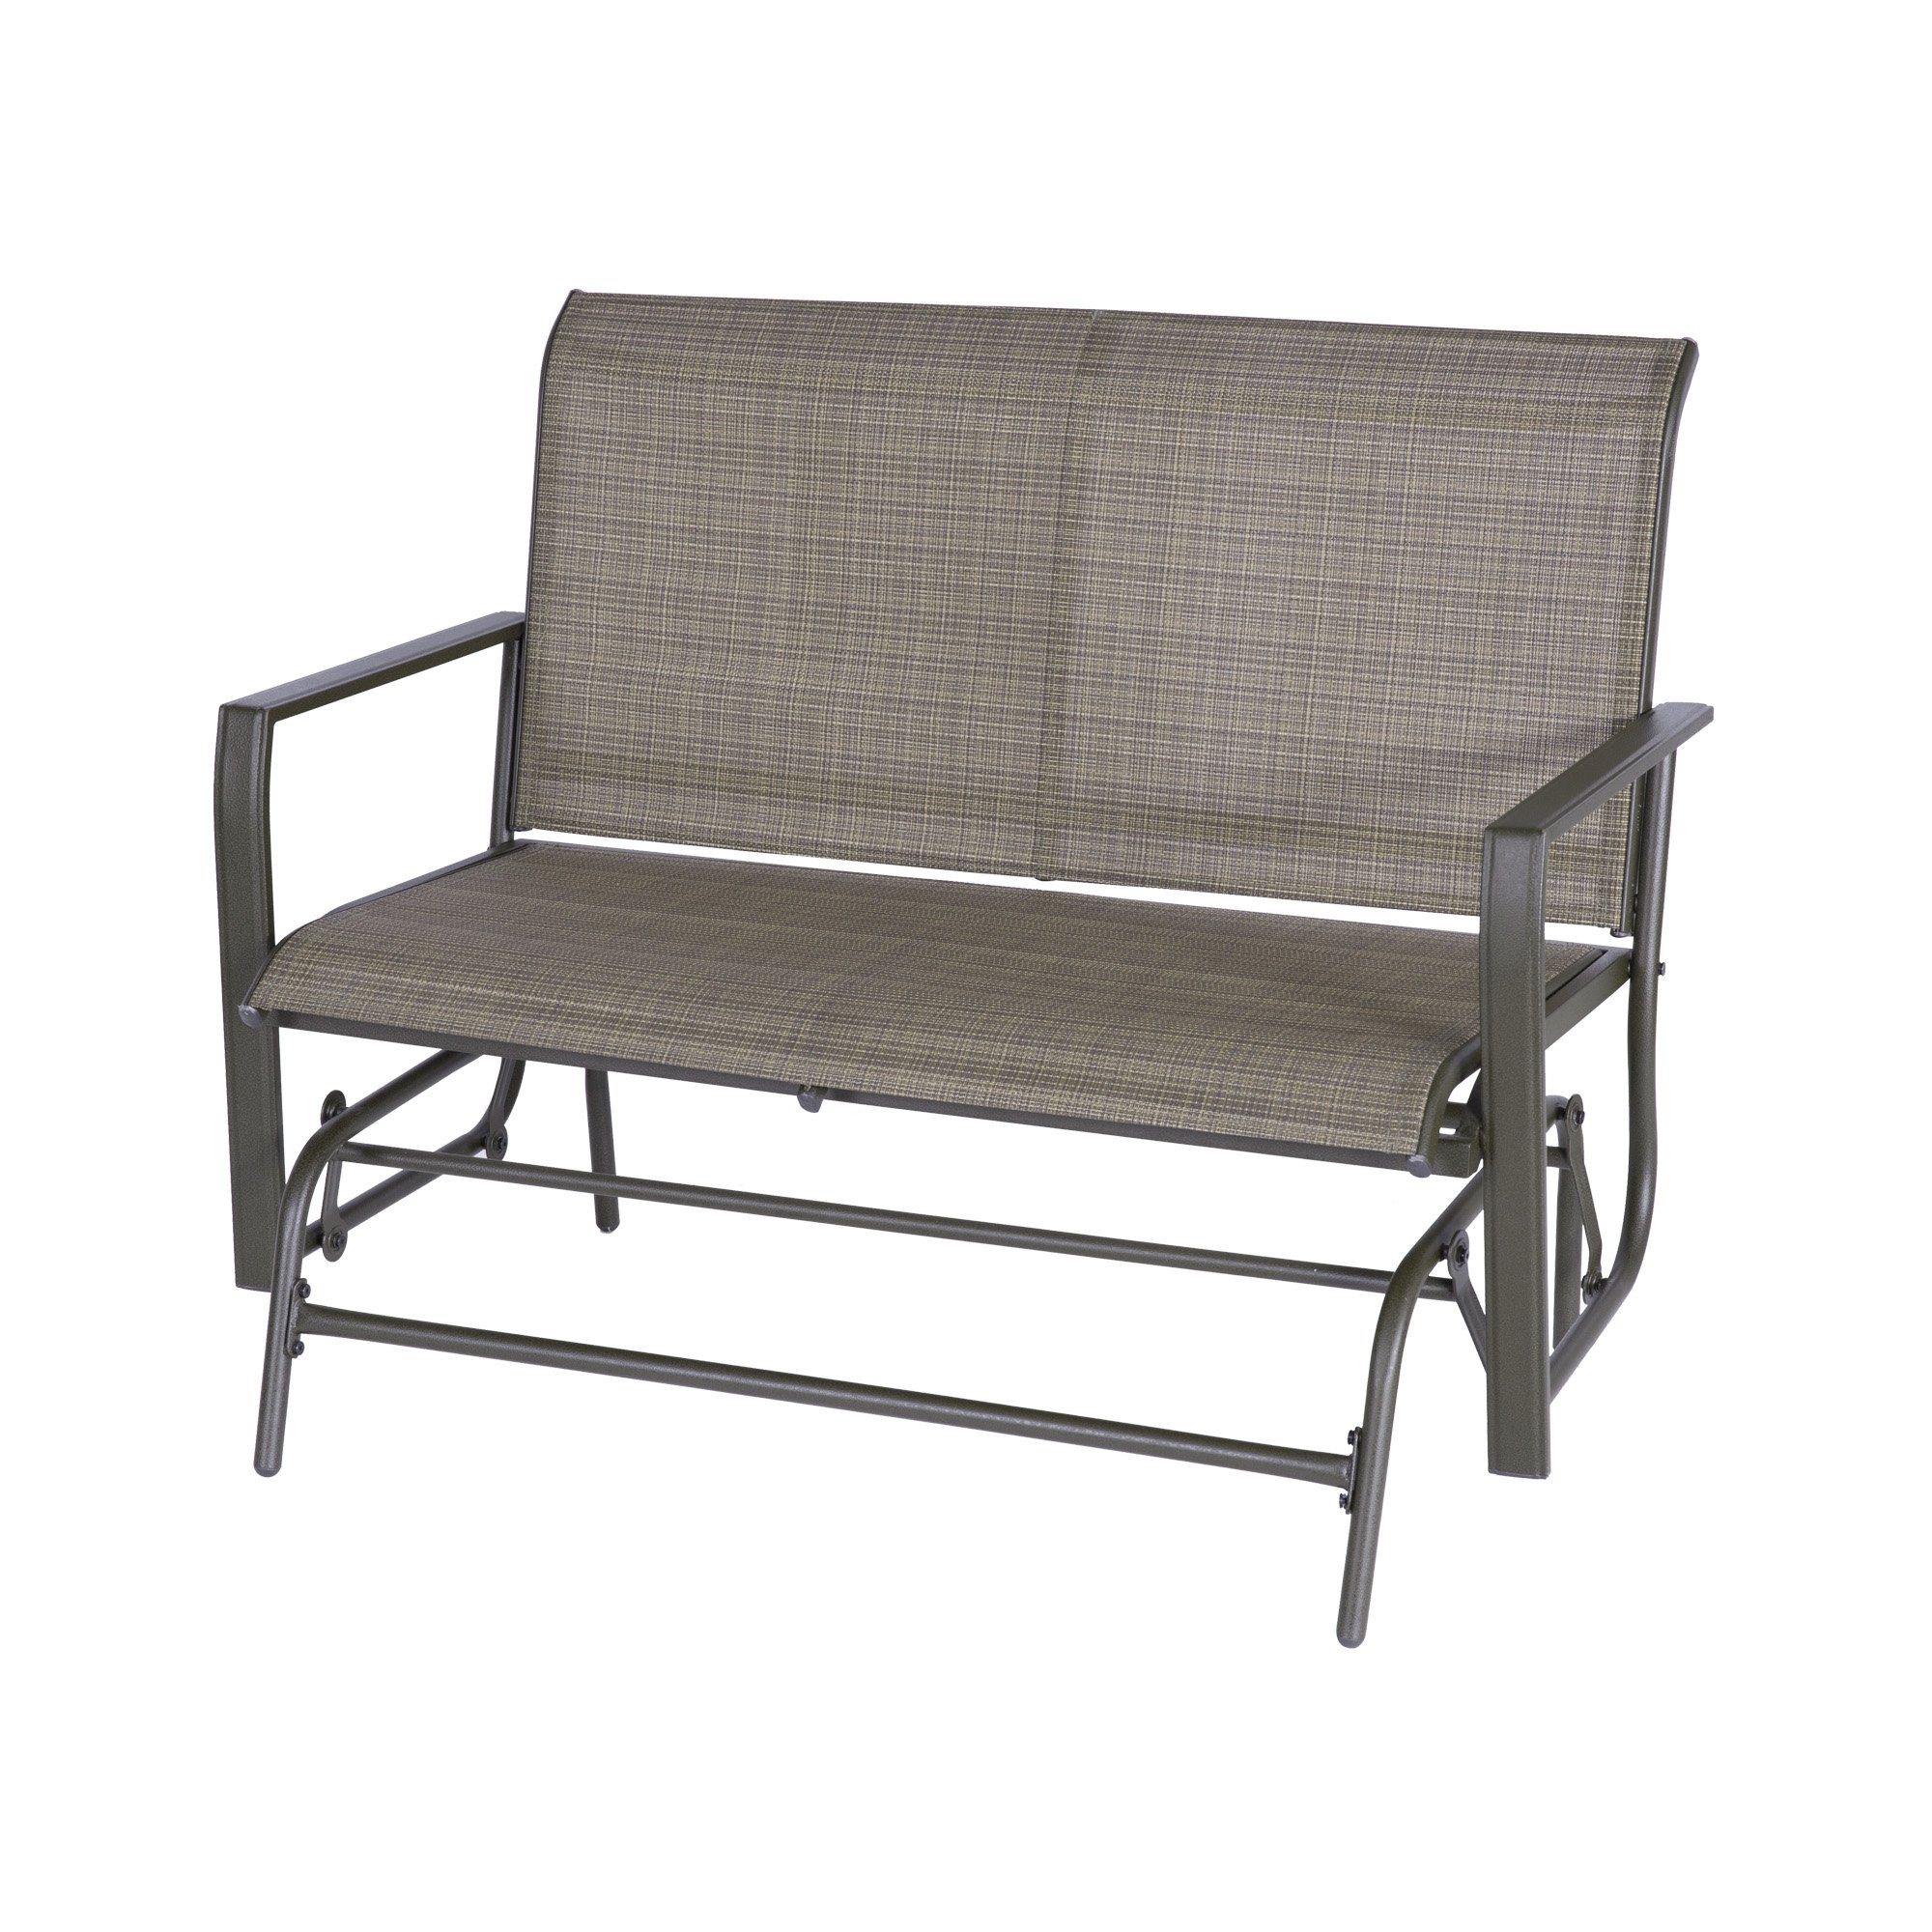 Patio Glider Bench Loveseat Outdoor Cushioed 2 Person Regarding Outdoor Patio Swing Glider Bench Chairs (View 8 of 25)